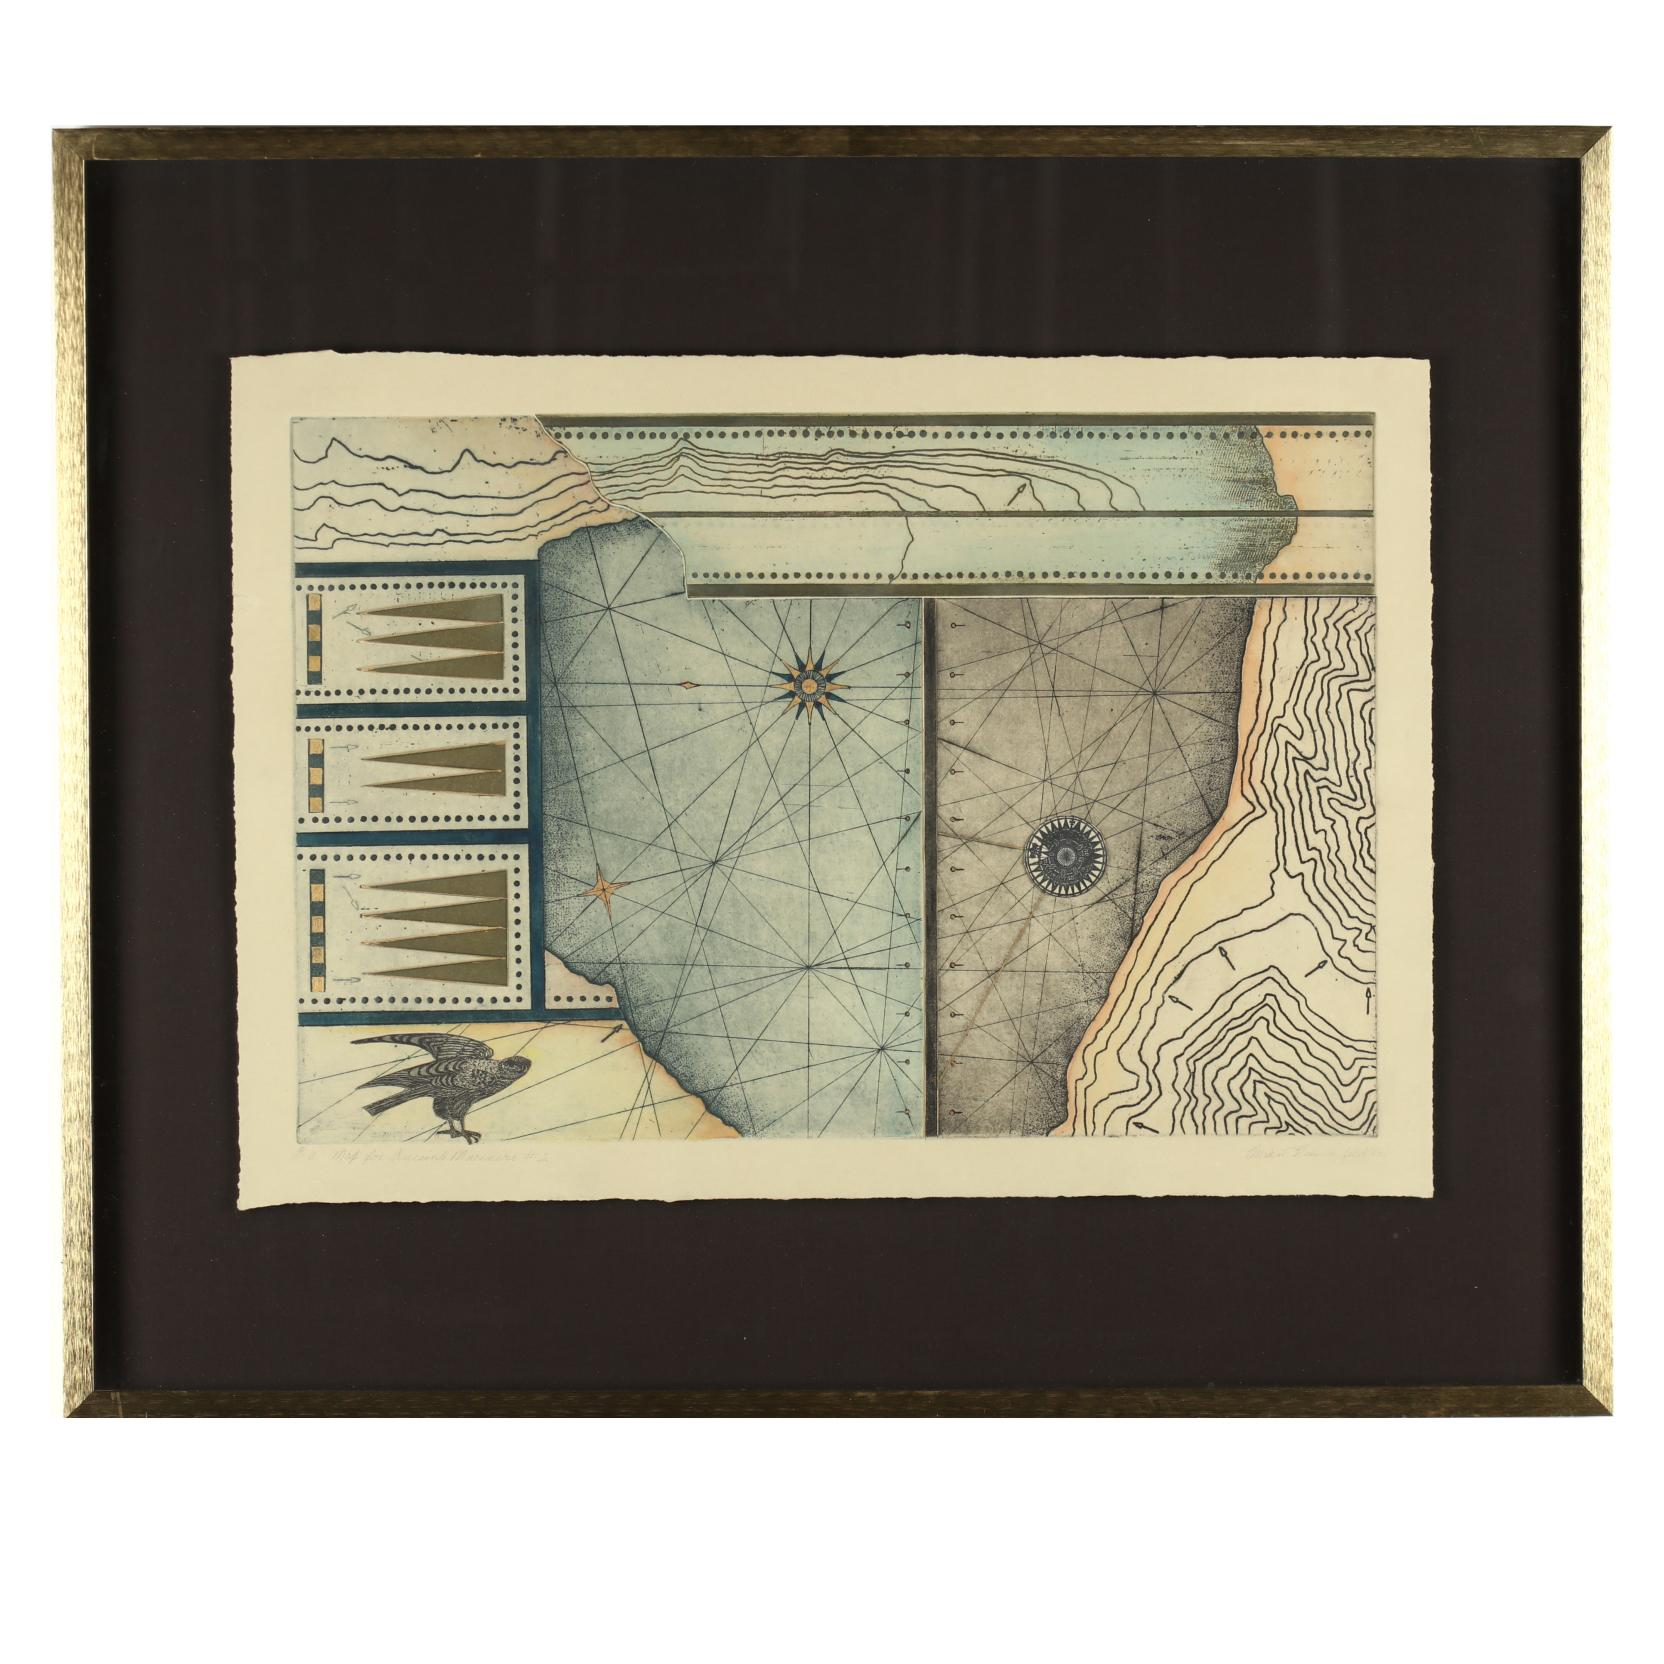 vivian-bergenfeld-pa-1923-2004-i-map-for-ancient-mariners-2-i